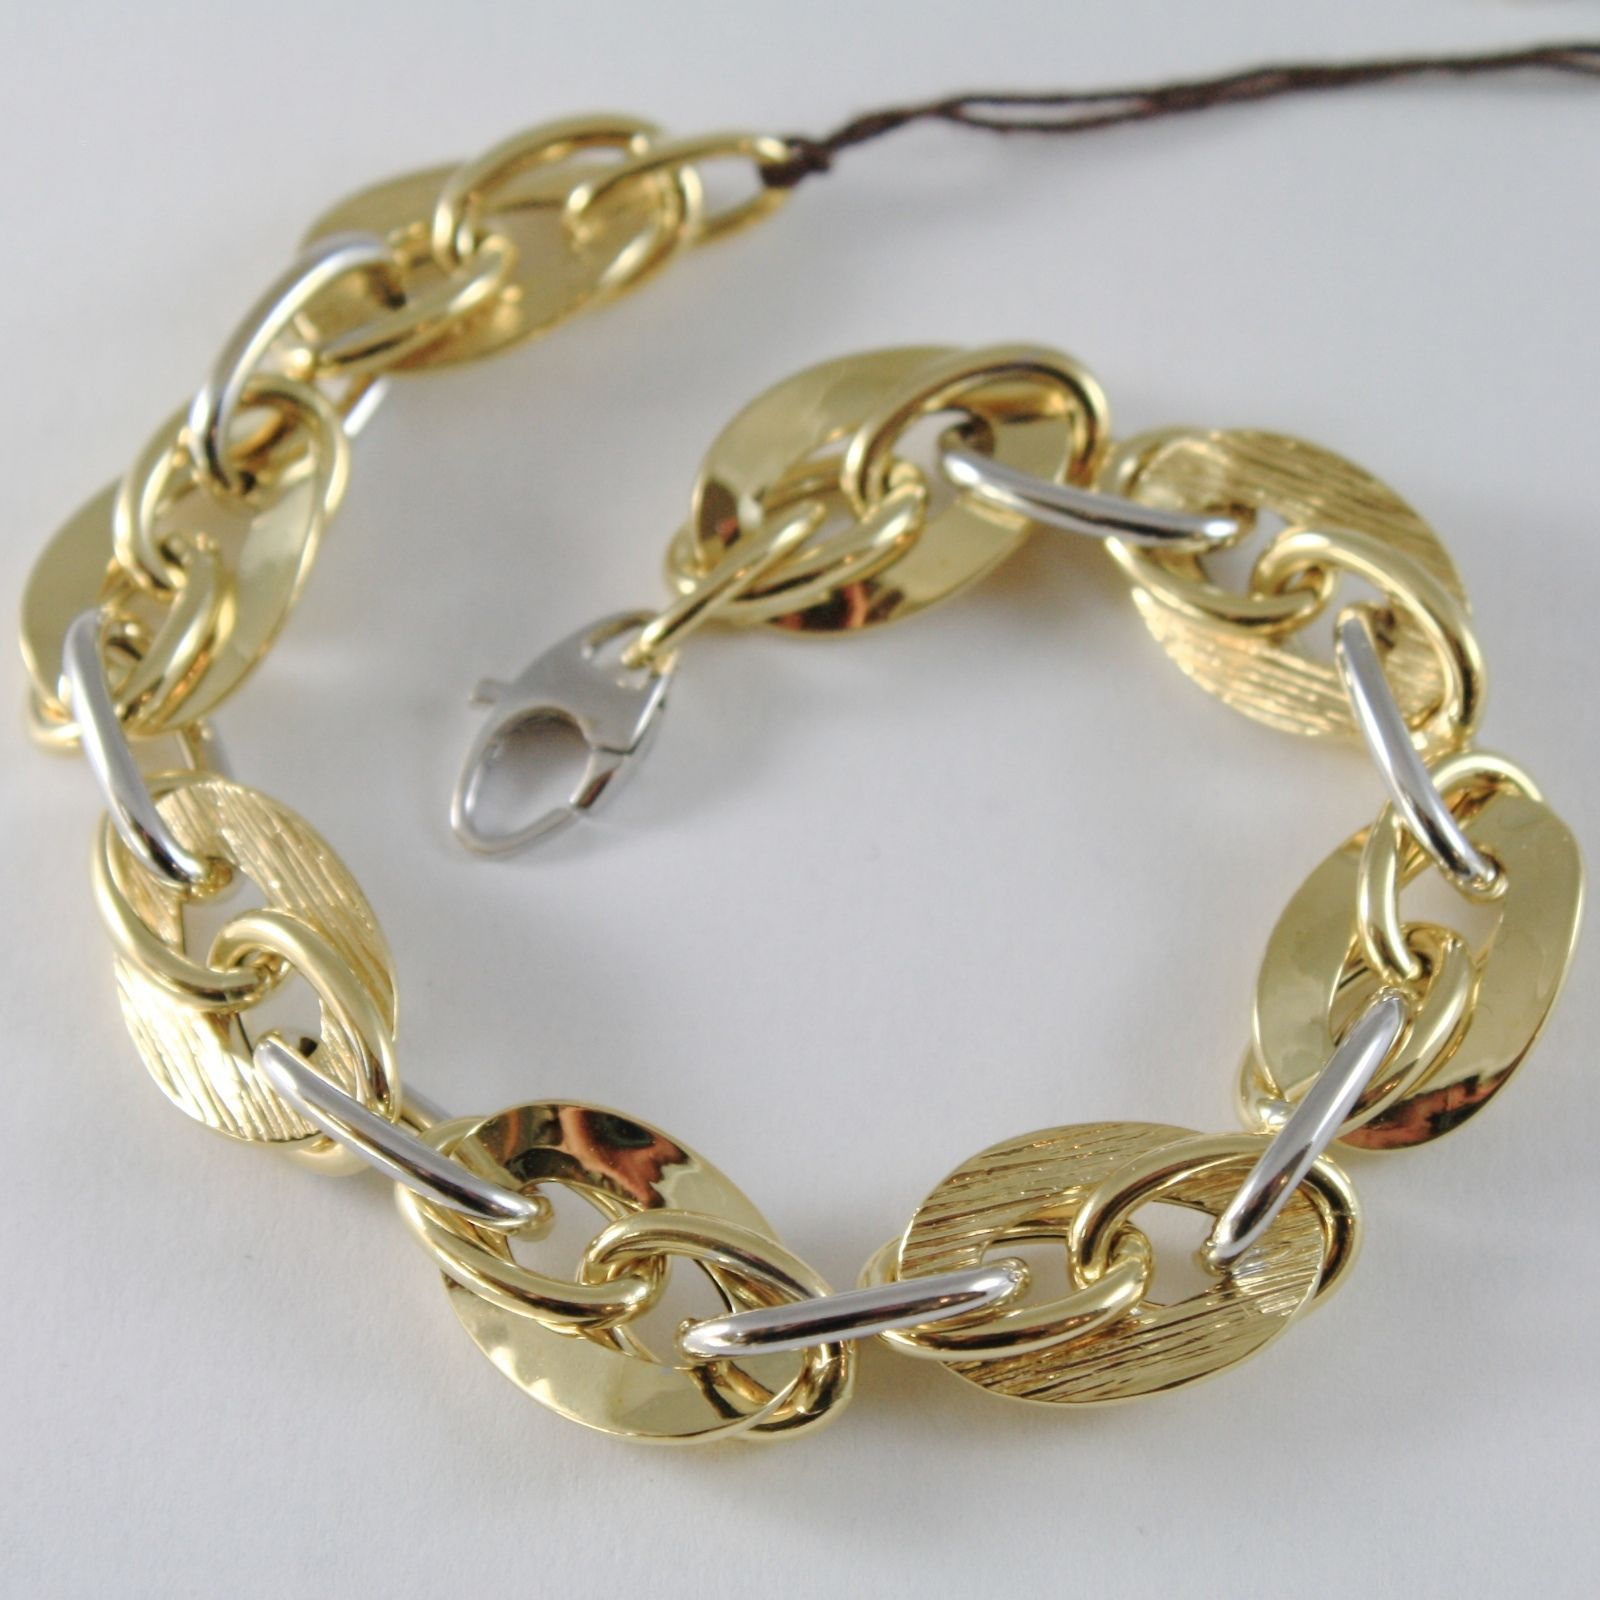 BRACELET YELLOW GOLD WHITE 750 18K WITH OVALS STRIPED AND ALTERNATING, 20.5 CM